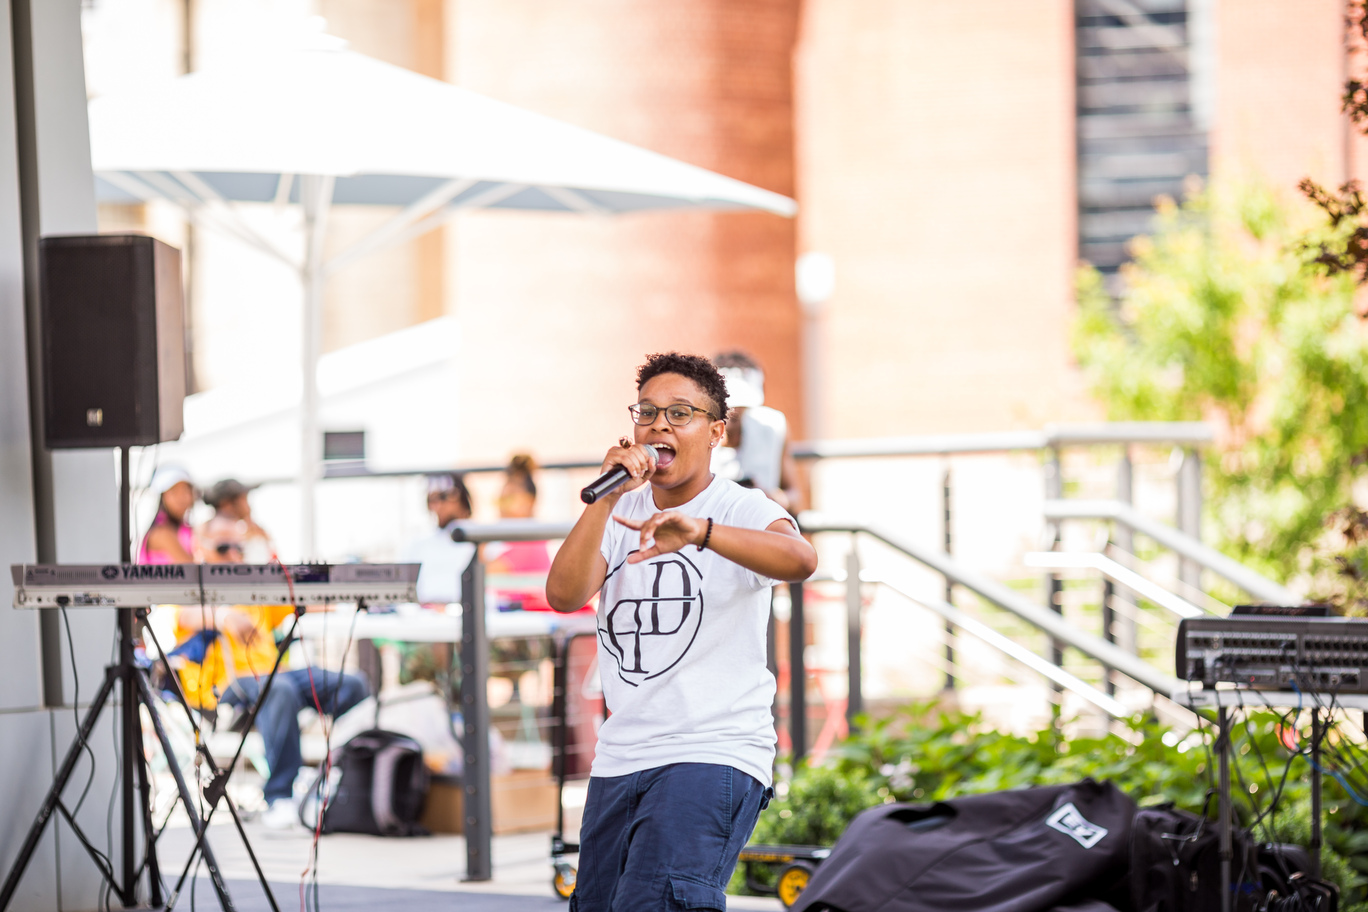 Singer on stage at Bailey Park during Food Truck Friday.